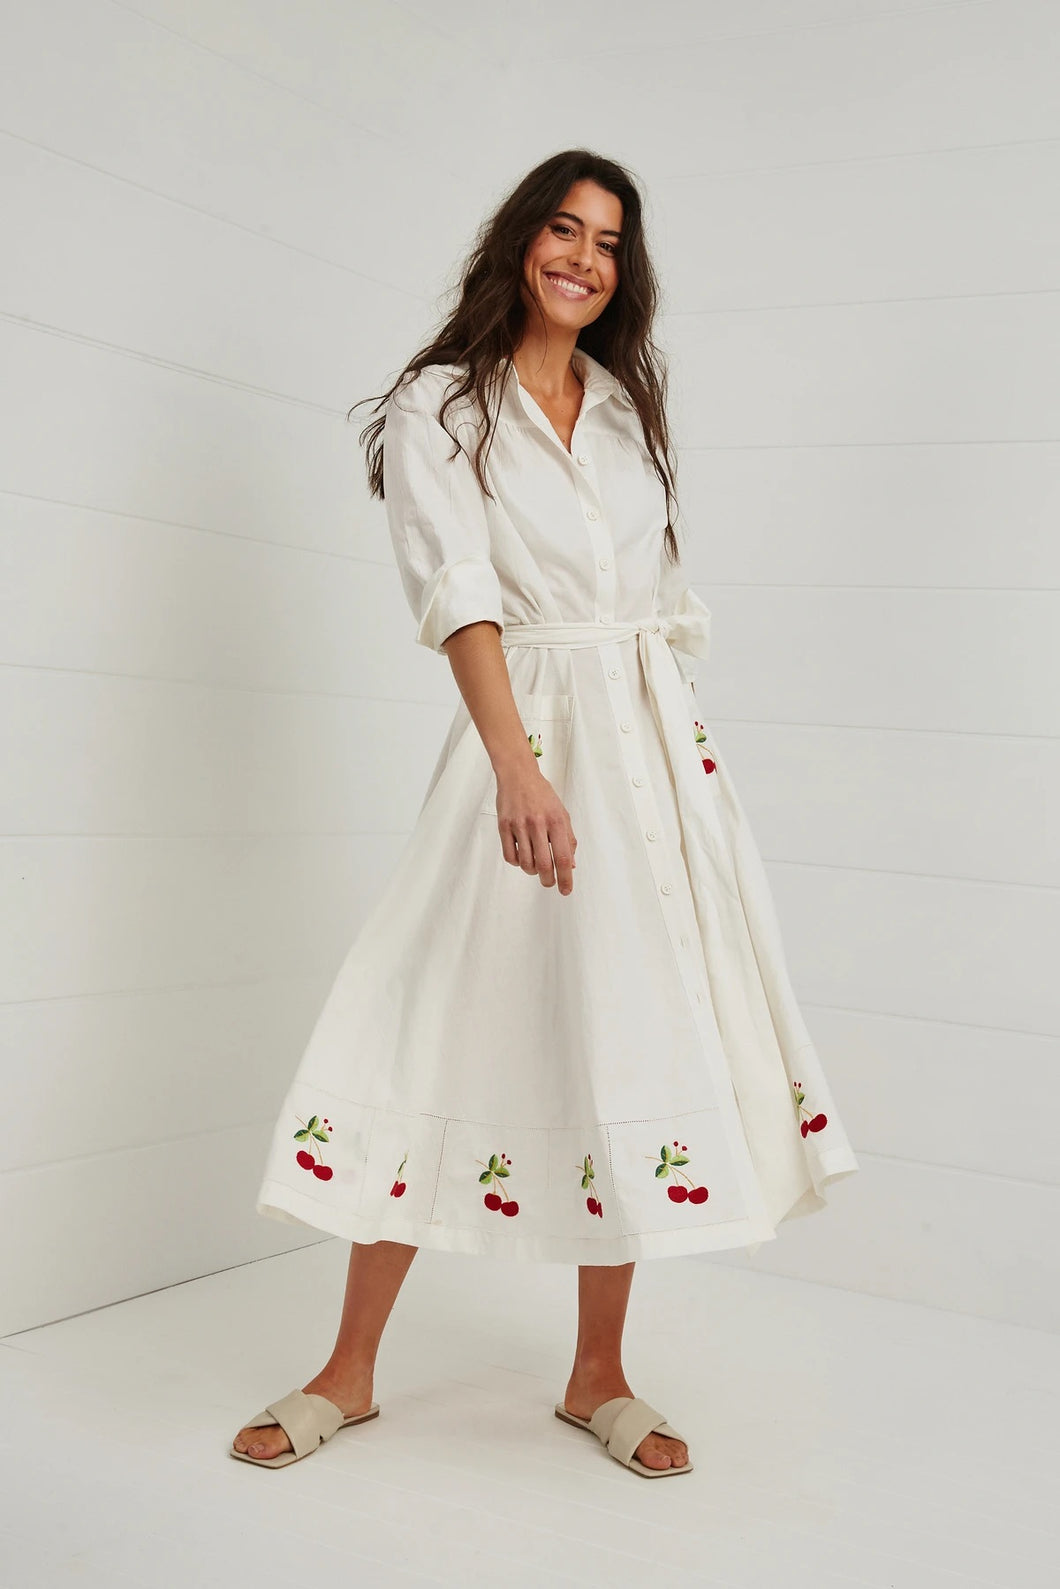 A Cherry Cherry Christmas Shirt Dress by Binny